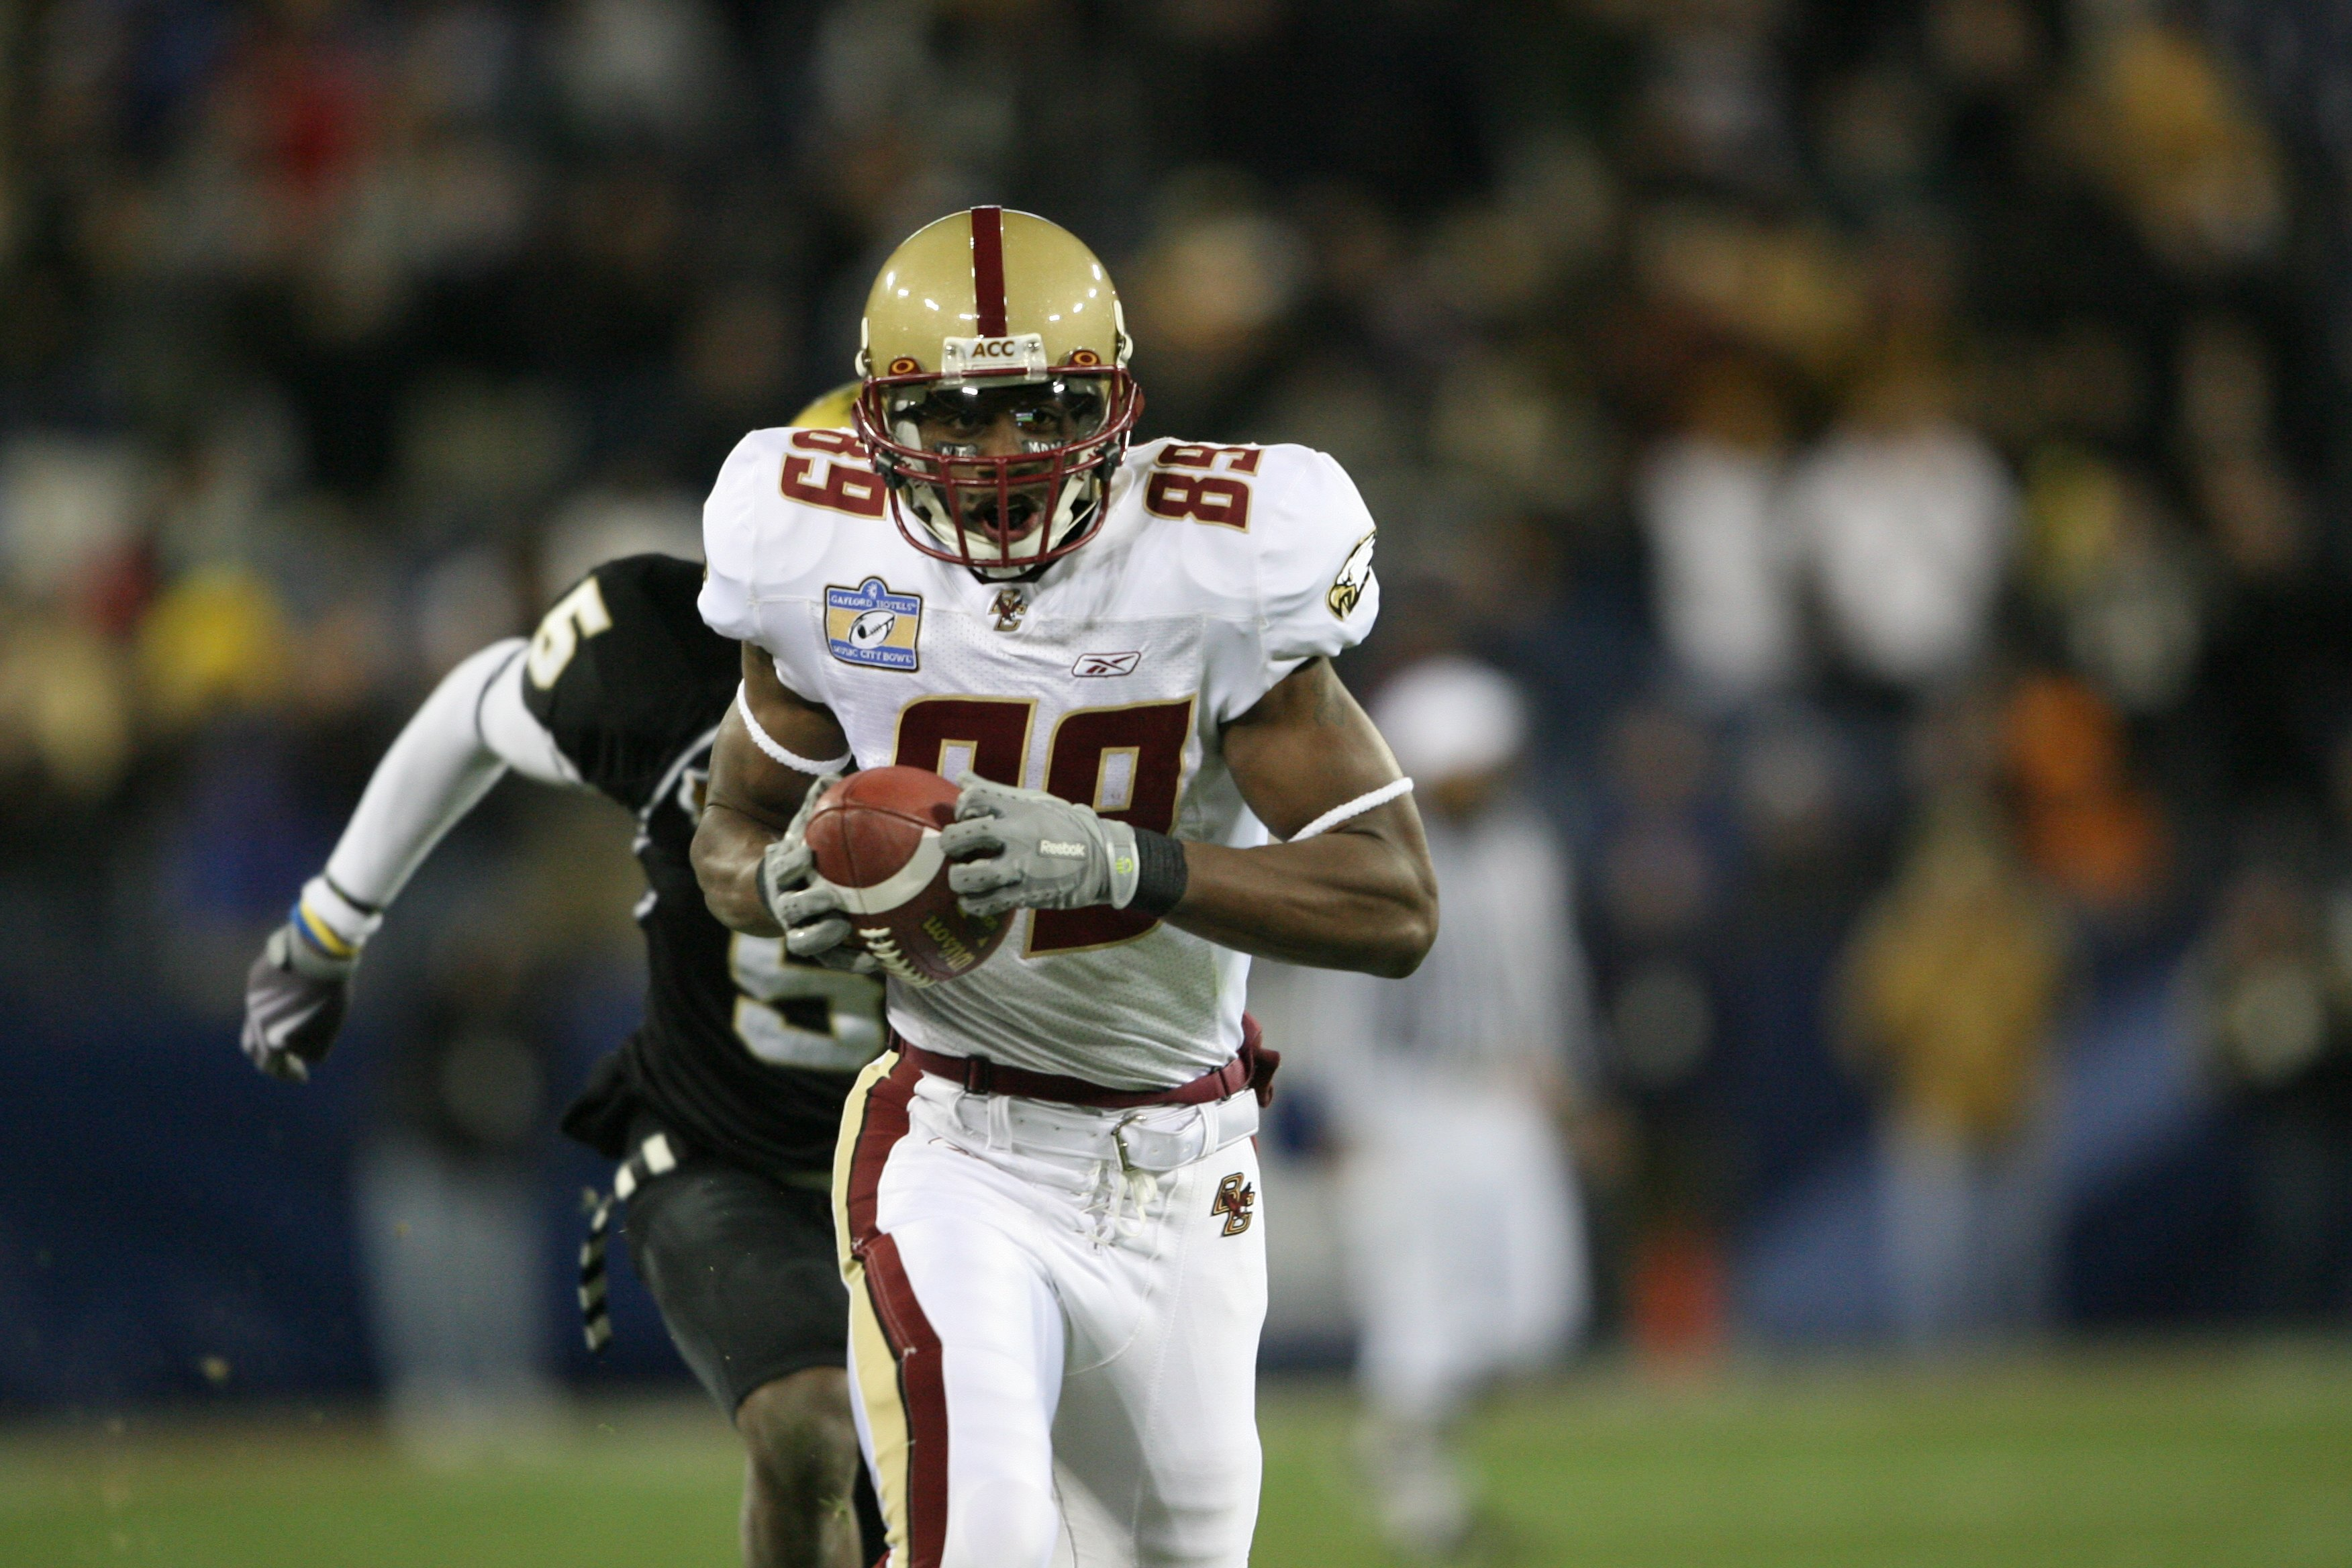 NASHVILLE, TN - DECEMBER 31:  Colin Larmond Jr. #89 of the Boston College Eagles carries the ball against the Vanderbilt Commodores during the Gaylord Hotels Music City Bowl at LP Field on December 31, 2008 in Nashville, Tennessee.  (Photo by Andy Lyons/G